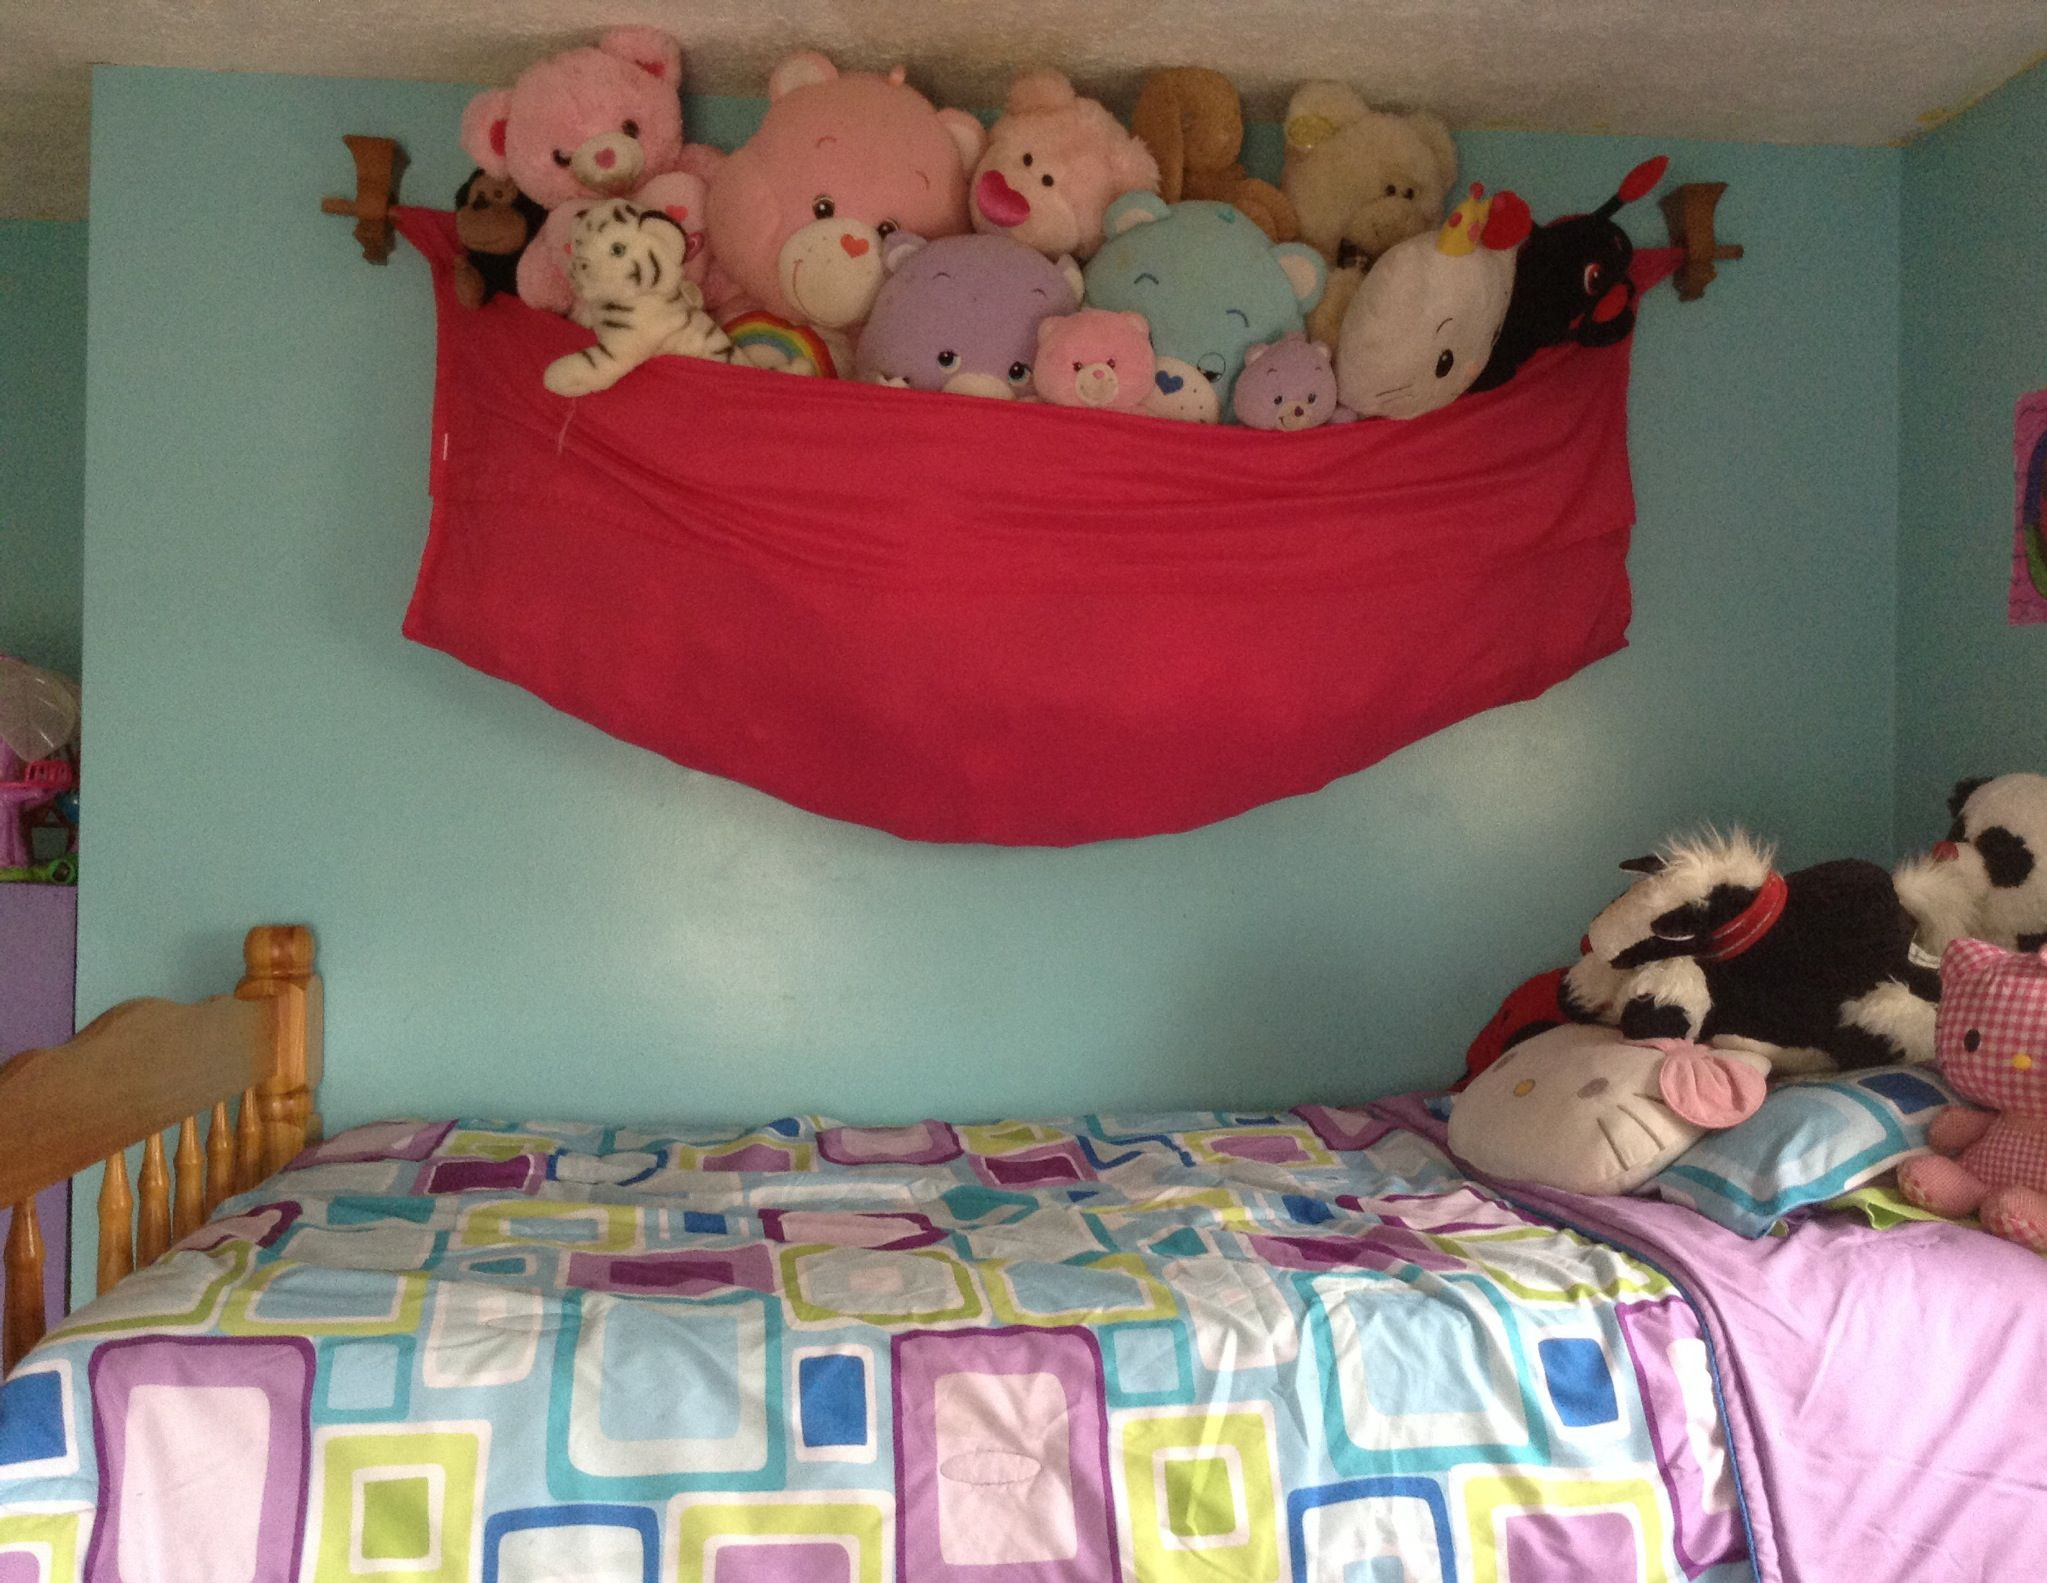 Sheet And Curtain Rod Used For Stuffed Animal Storage In